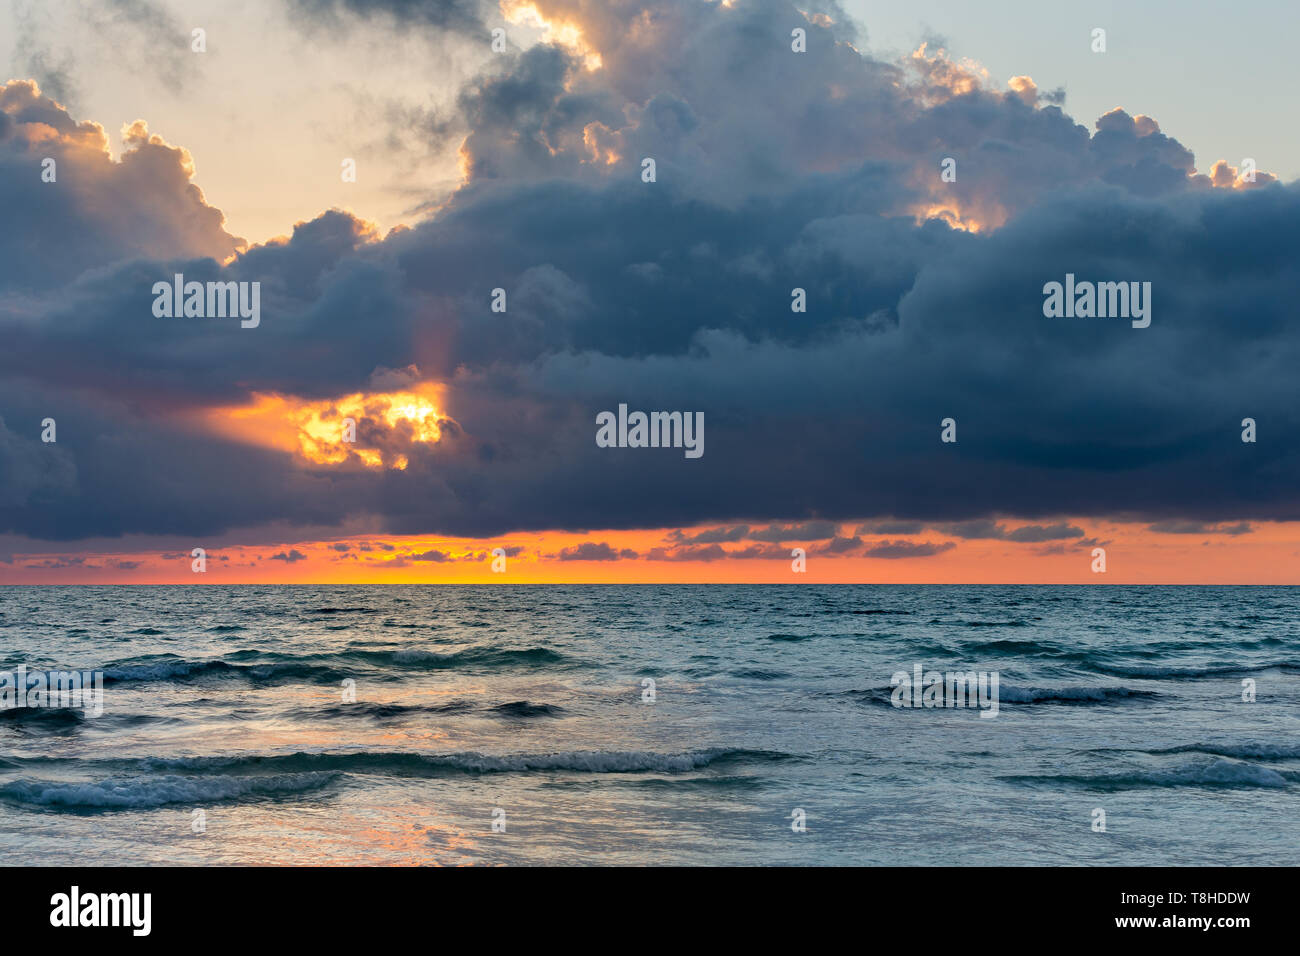 Ocean sunset or sunrise background with dramatic storm clouds and orange reflections on the water. - Stock Image